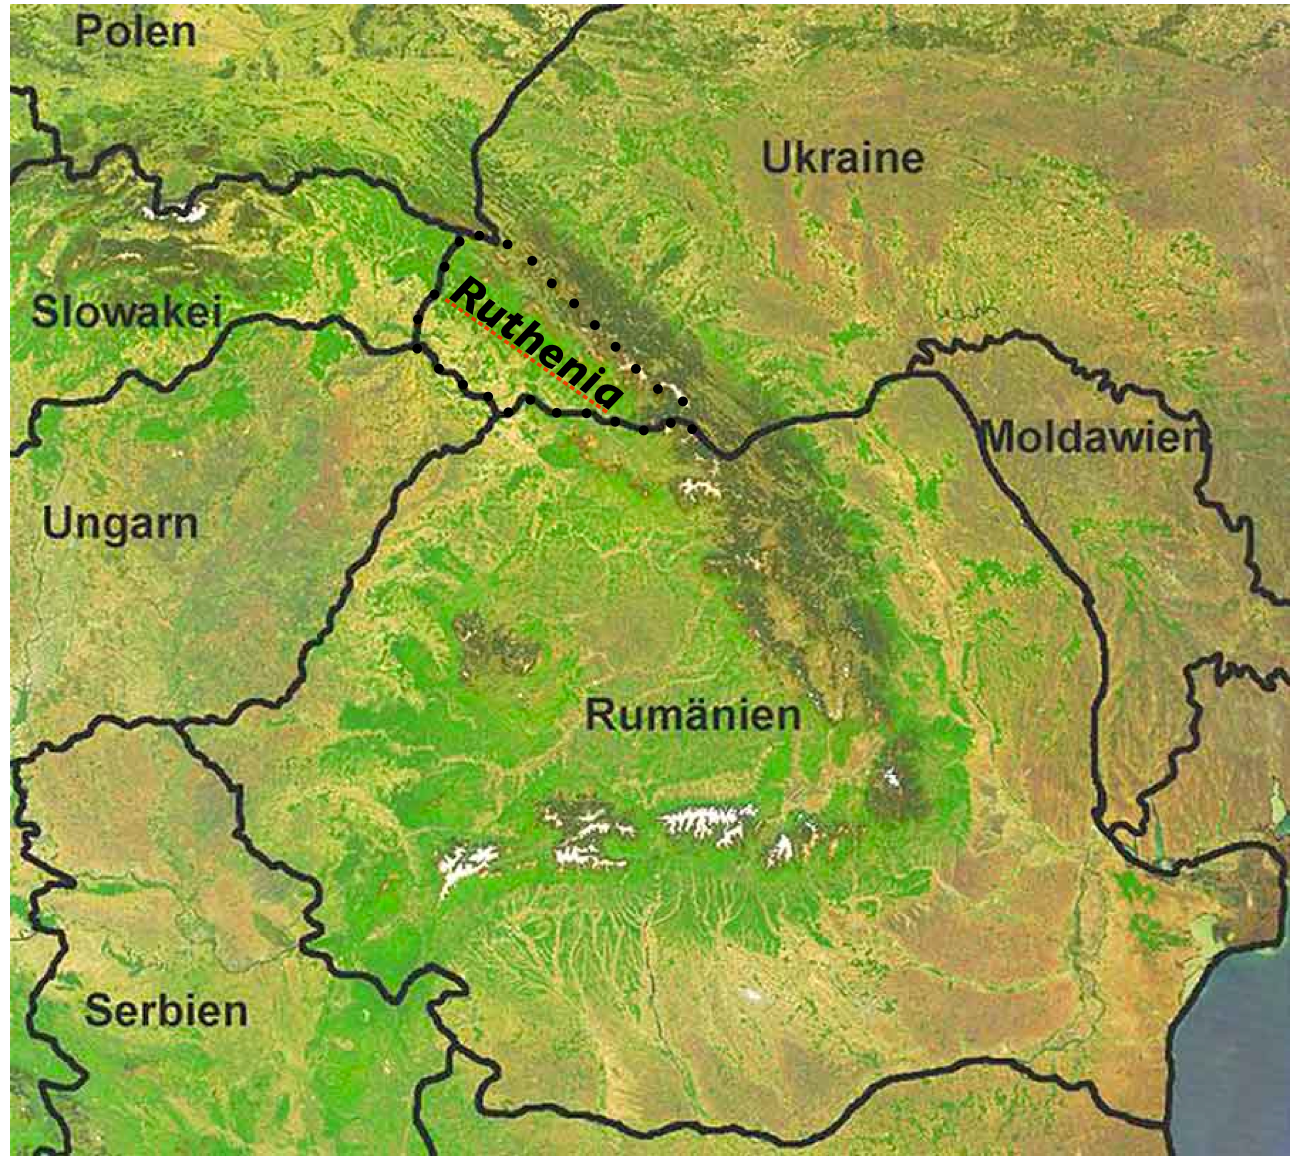 Ukrainian Regionalism and the Federal Option on ural mountains map, kjolen mountains map, baltic sea russia map, pechora river russia map, malta russia map, bessarabia russia map, france russia map, slovakia russia map, balkan mountains russia map, dubrovnik russia map, north european plain russia map, canada russia map, altai mountains russia map, croatia russia map, iceland russia map, volgograd russia map, tallinn russia map, sudeten mountains map, albania russia map, danube russia map,